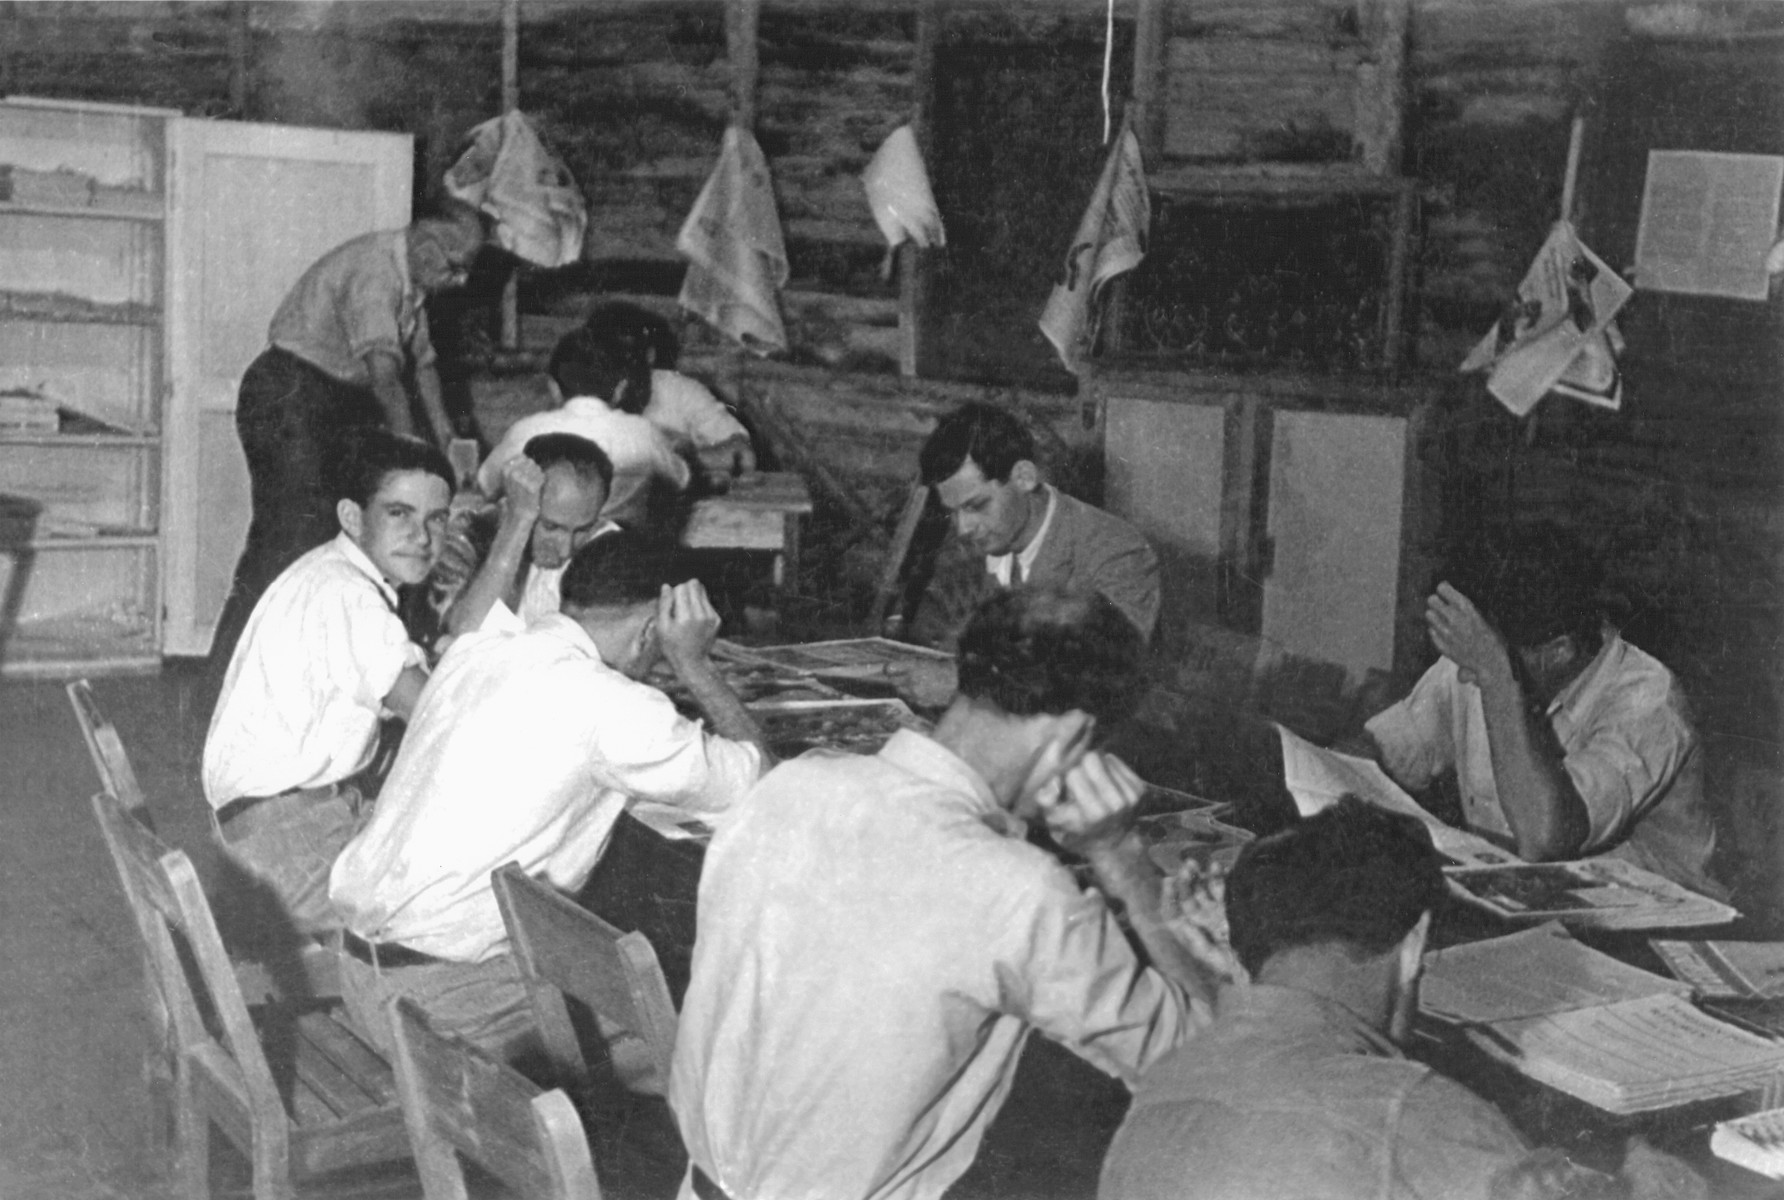 Jewish refugees read newspapers and magazines in the reading hall of the Sosua settlement.  Among those pictured is Kurt Wellisch (looking in direction of photographer).